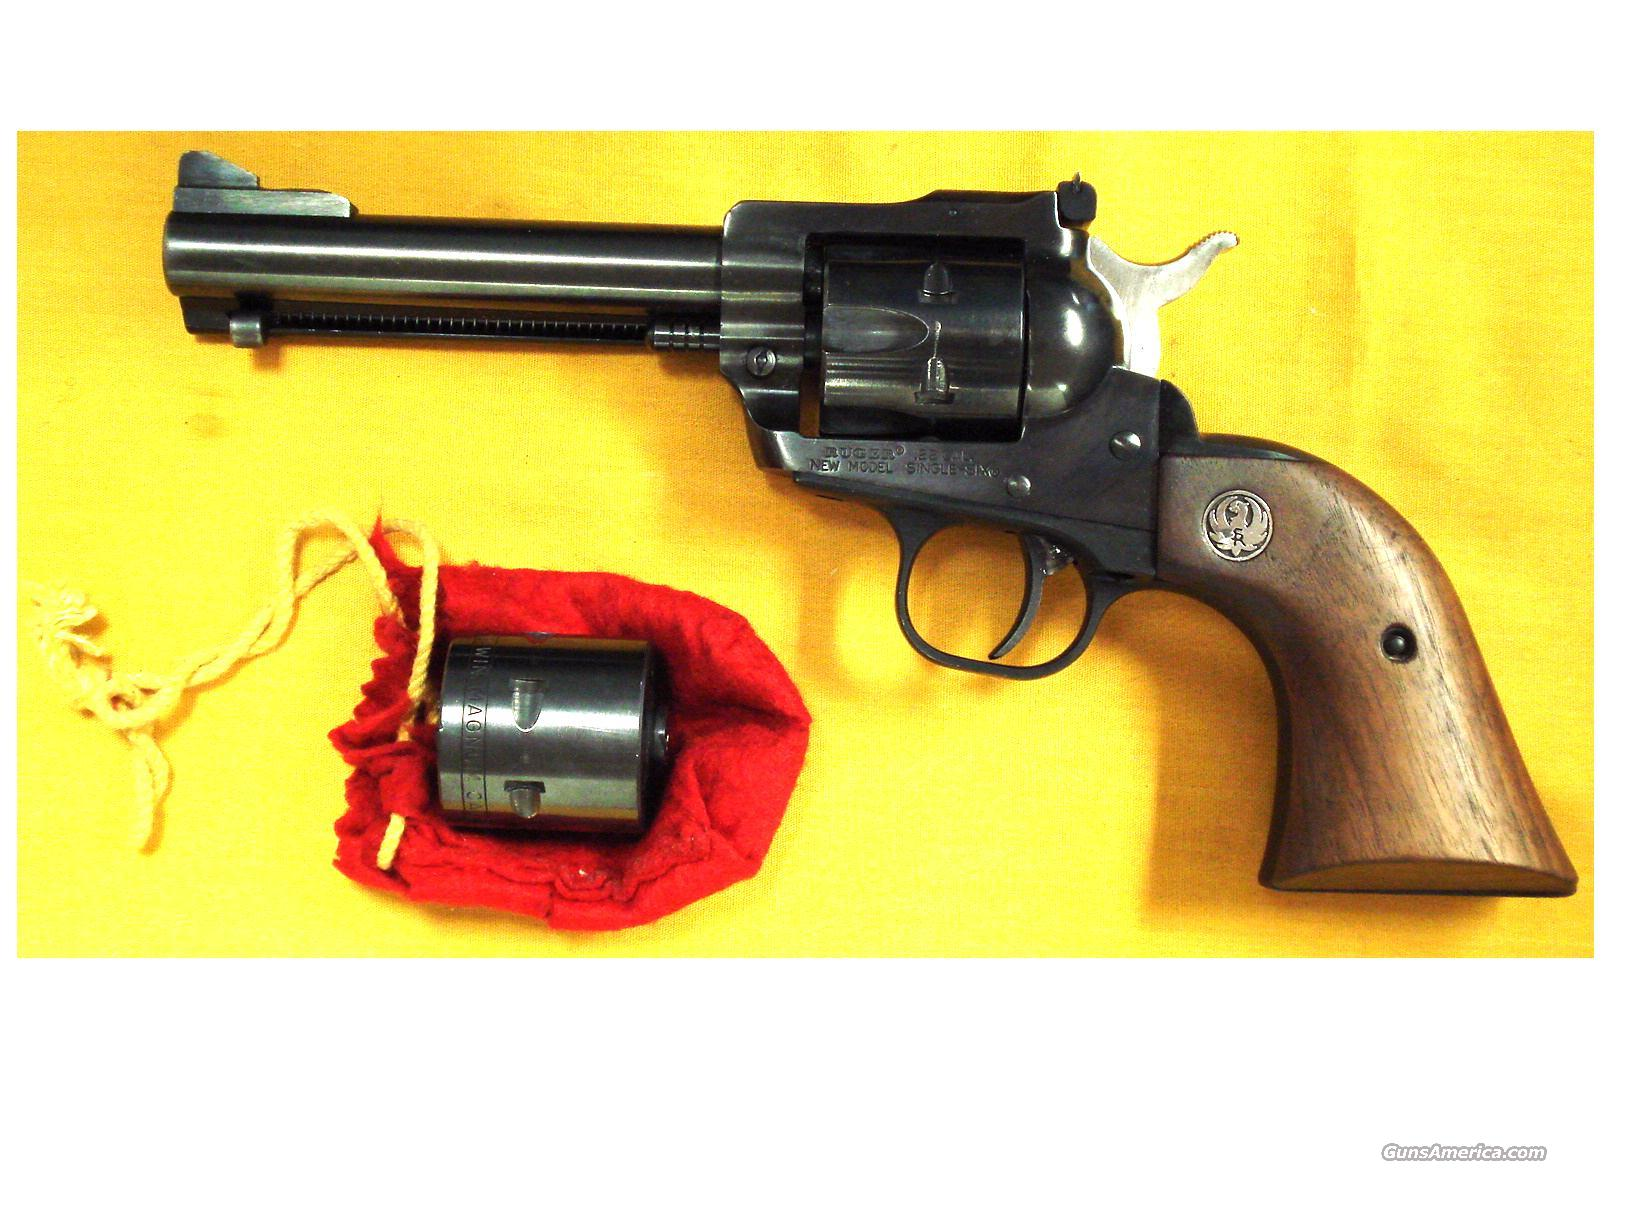 "RUGER SINGLE SIX .22MAG/22LR 4 1/2""BBL  Guns > Pistols > Ruger Single Action Revolvers > Single Six Type"